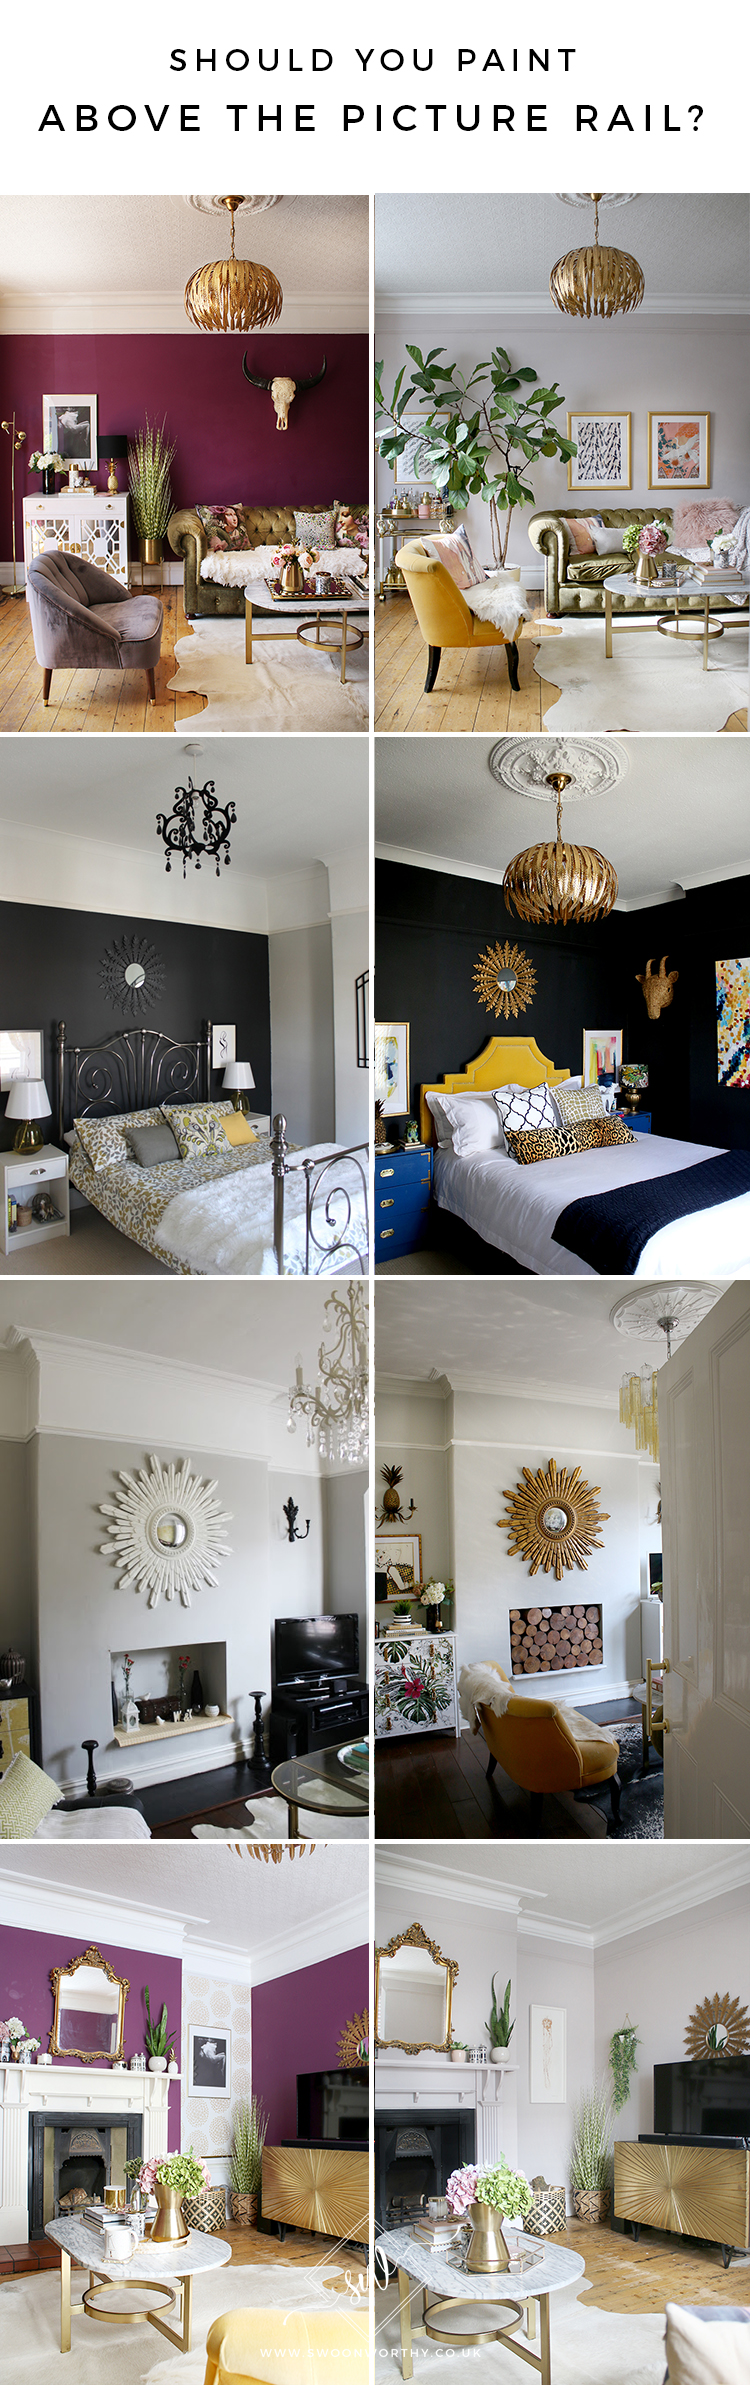 Should You Paint Above the Picture Rail Before and Afters